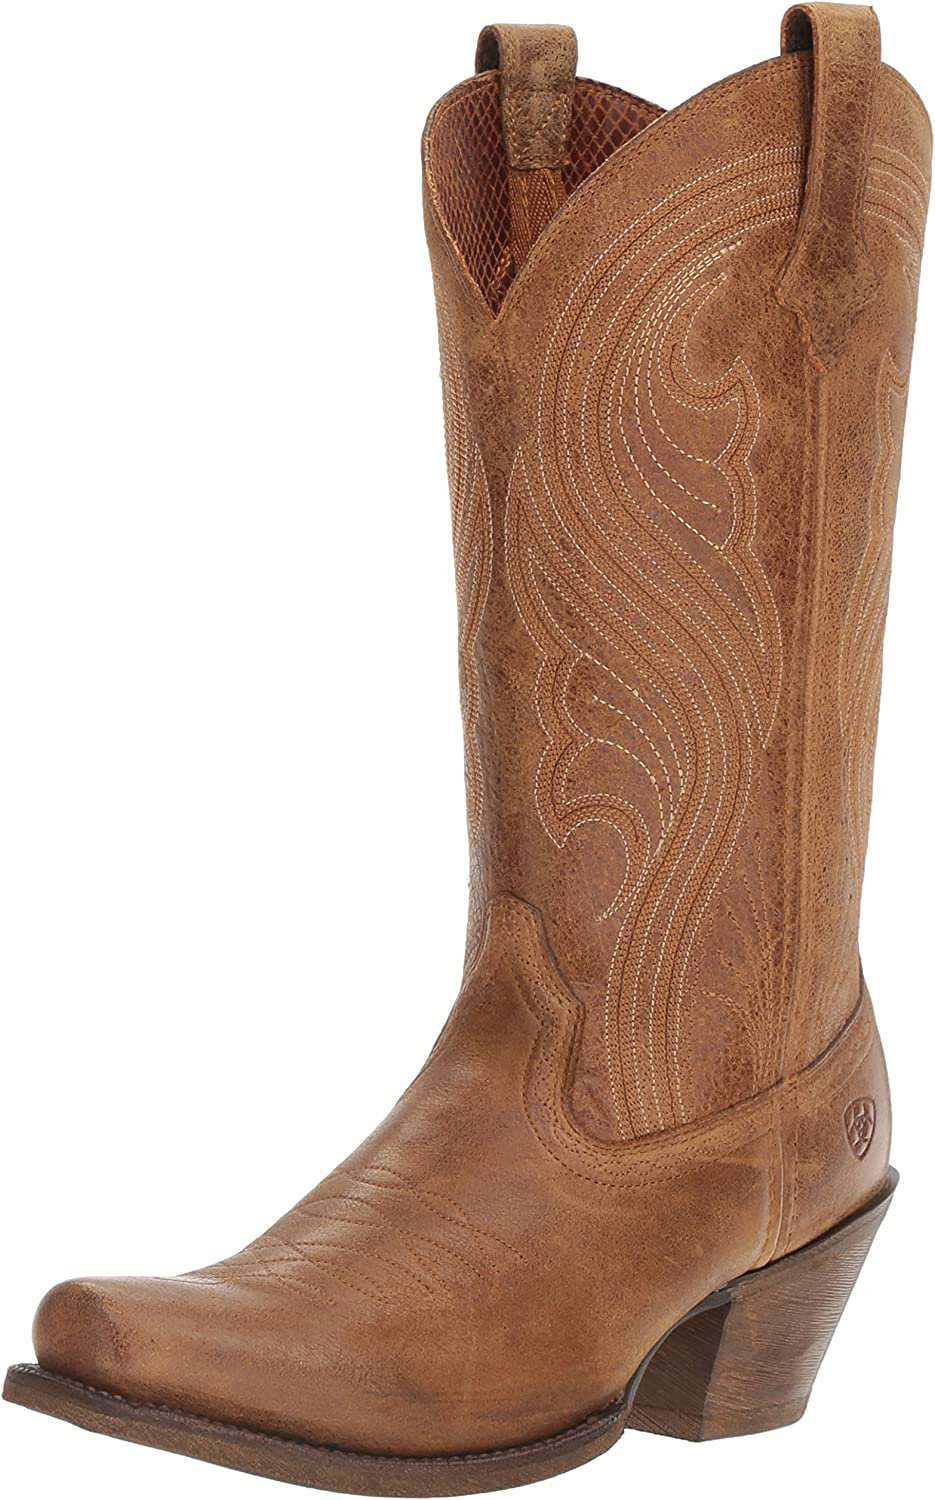 Ariat Women's Women's Lively Western Cowboy Boot, Old West Brown, 9 B US